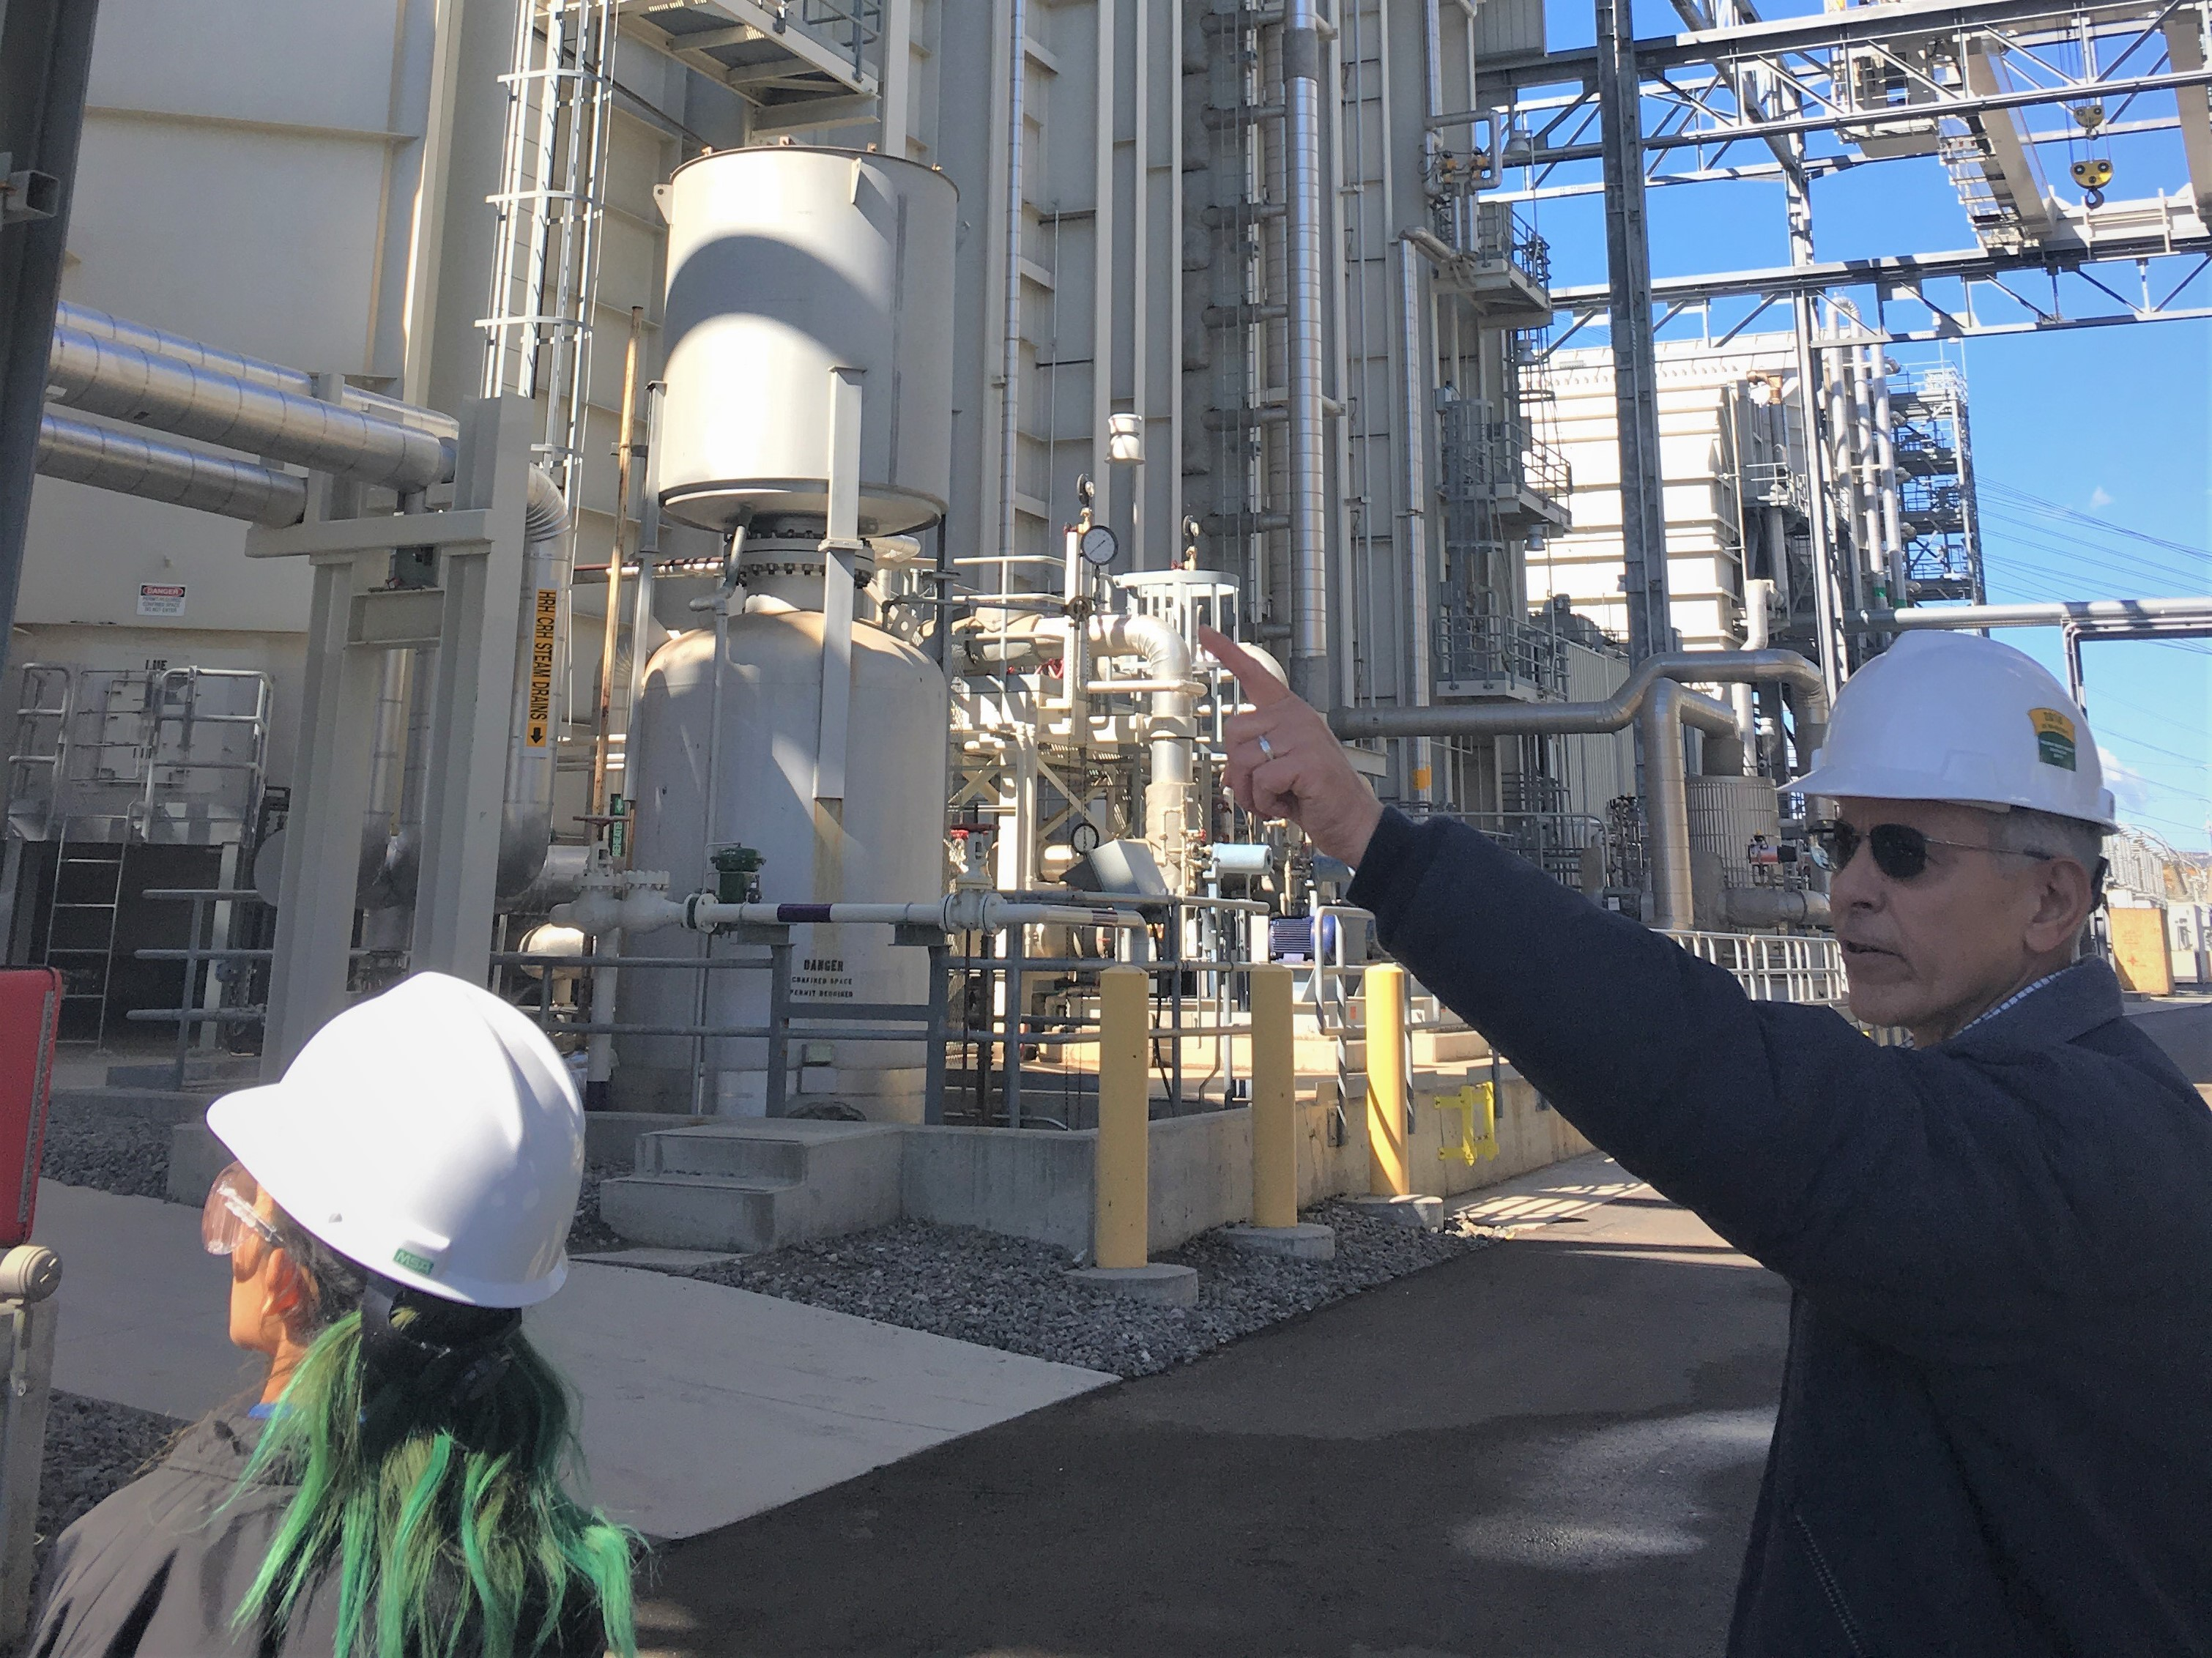 Carl La Peter, plant manager at Palomar Energy Center, educates students on how the power plant converts and transfers energy, from clean natural gas, to produce electricity for 420,000 homes.